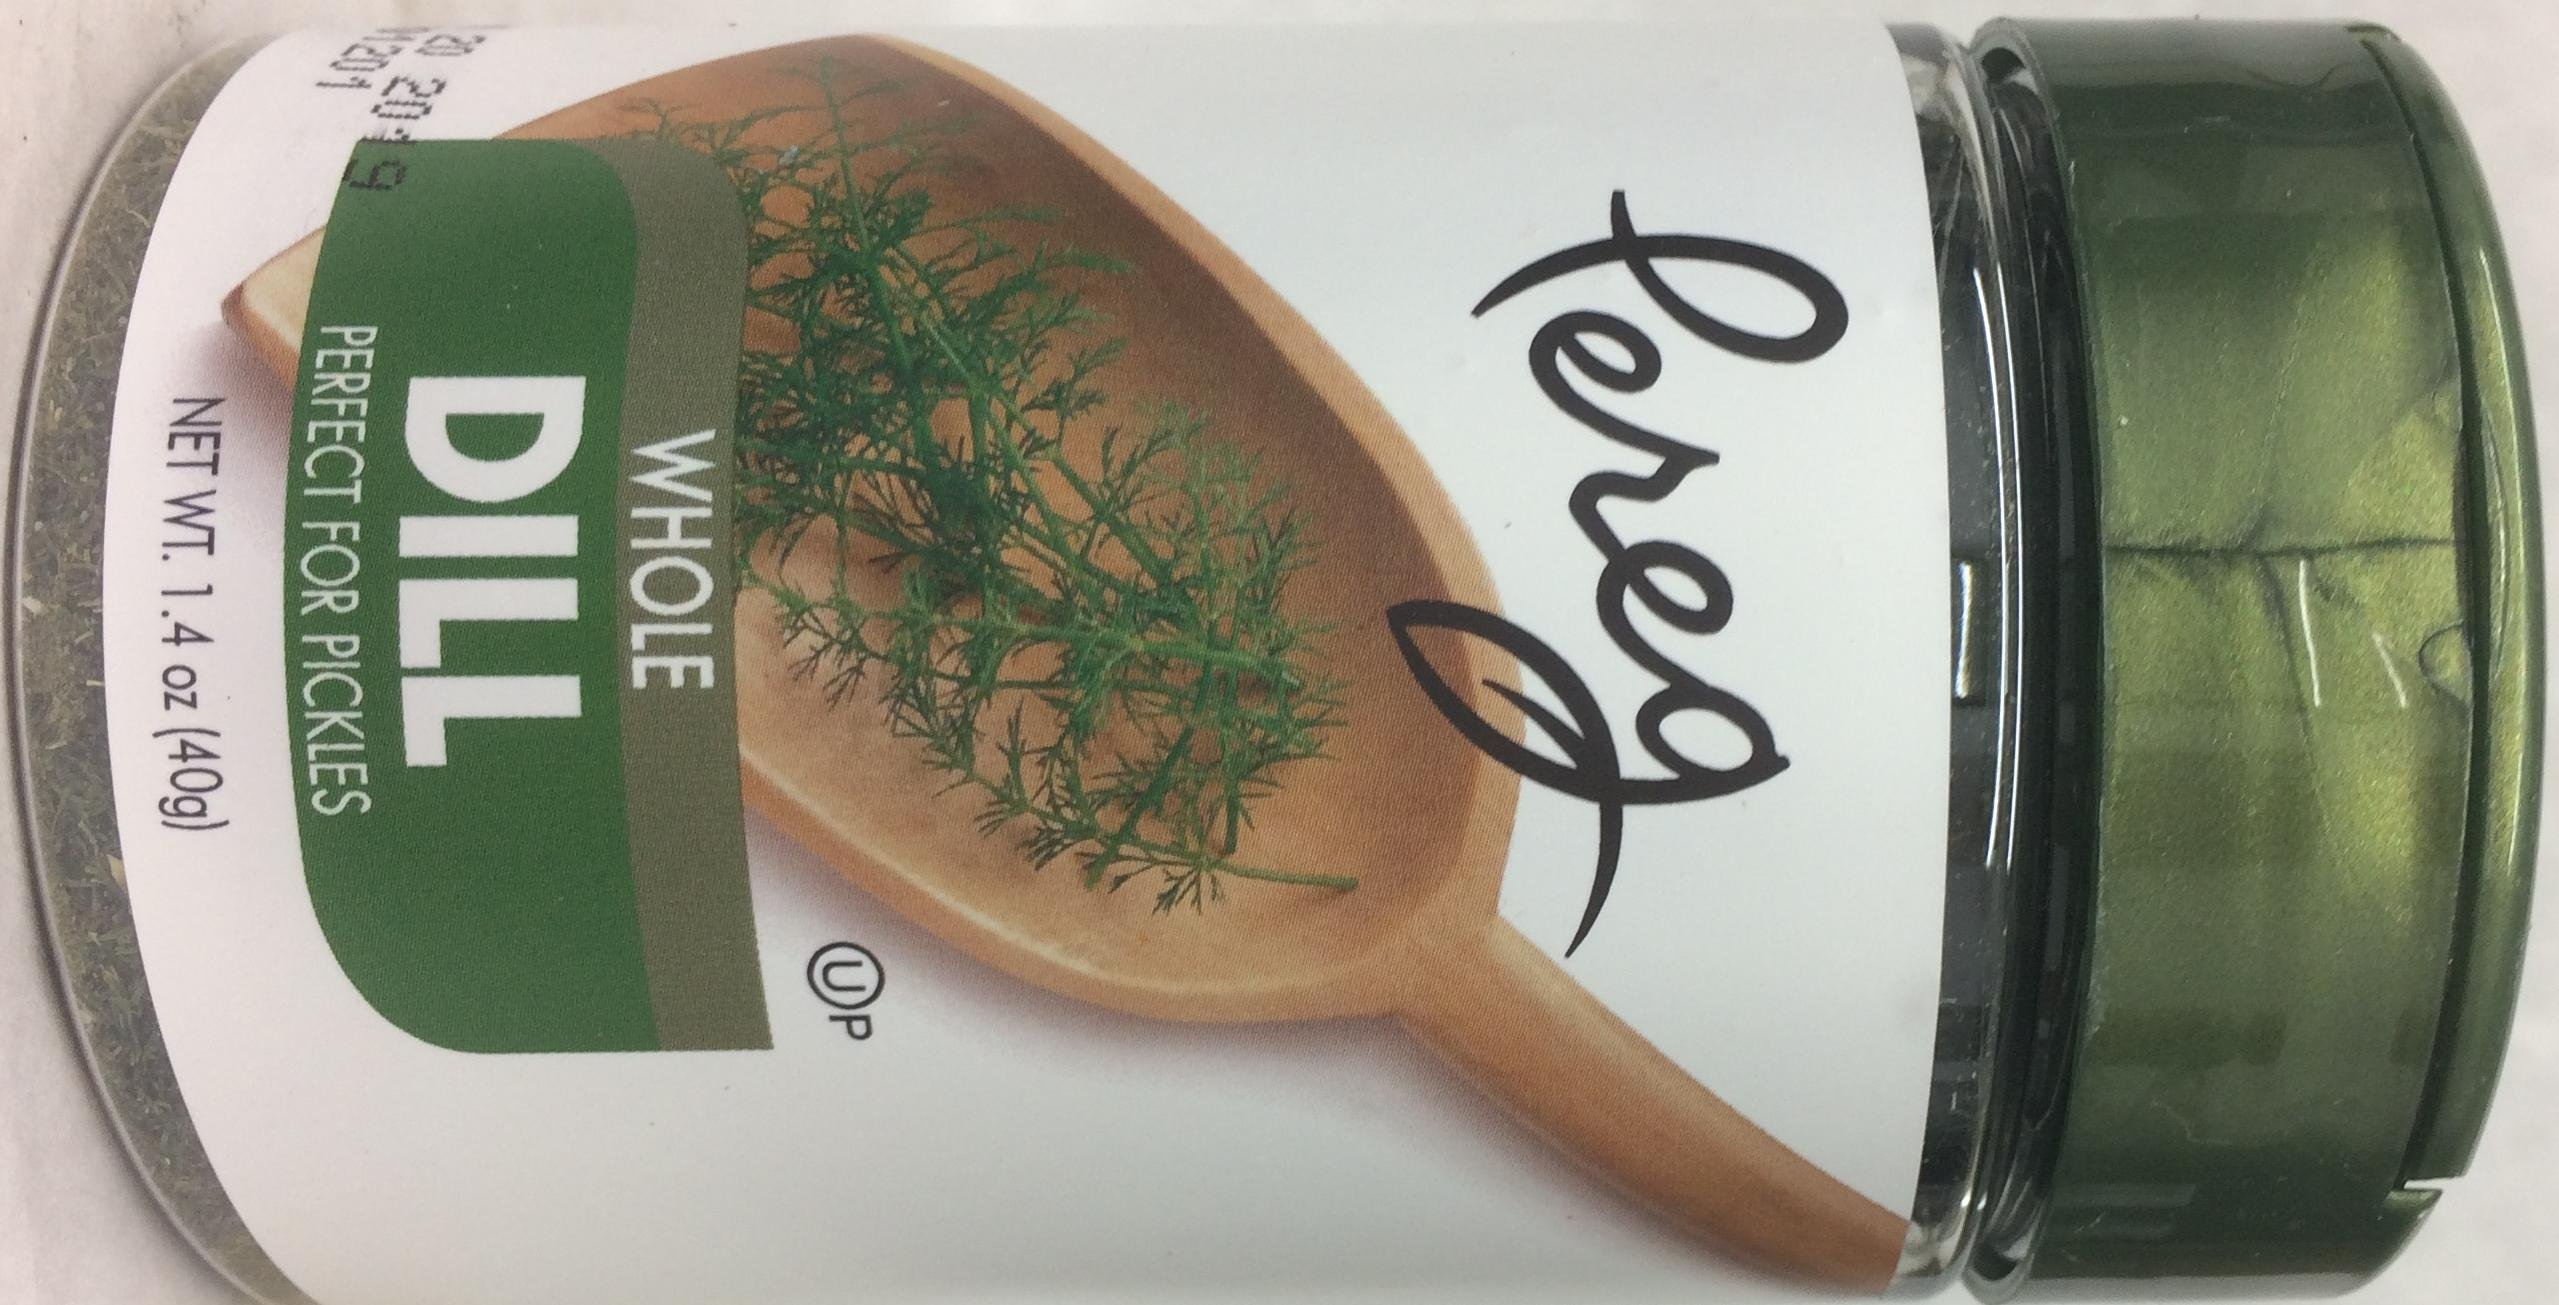 Pereg Whole Dill Perfect For Pickles Kosher For Passover 1.4 Oz. Pack Of 1.